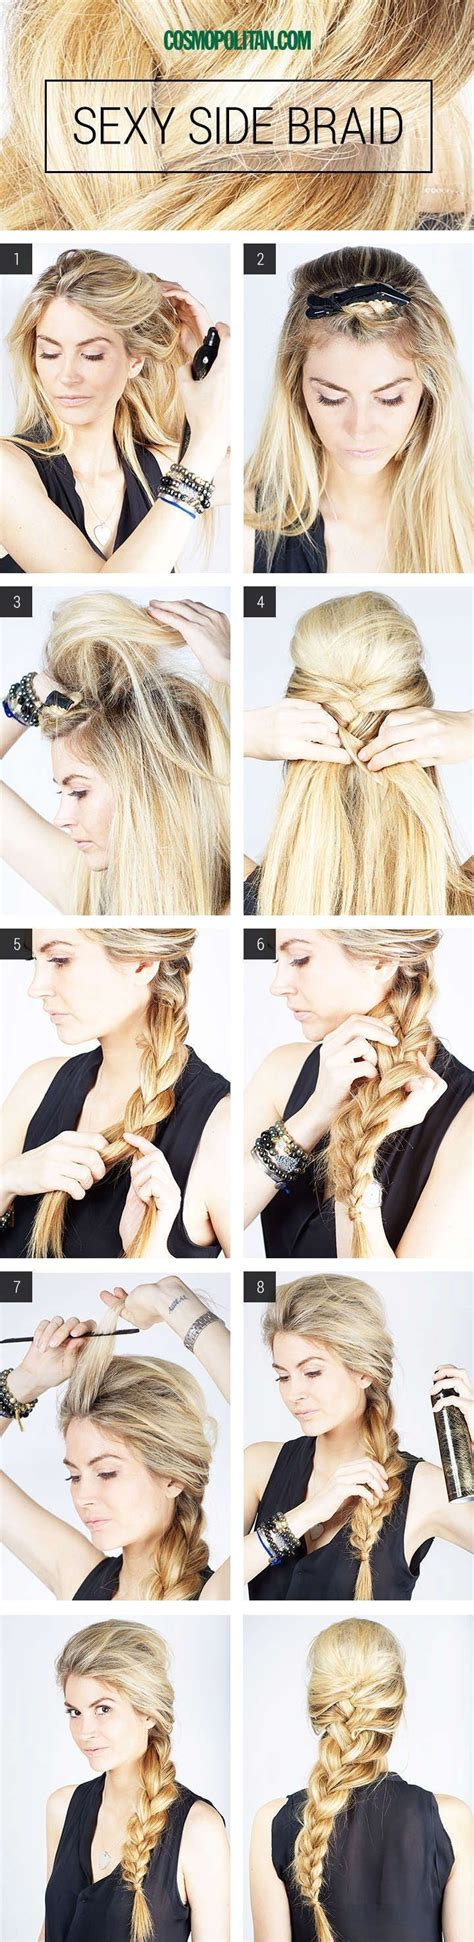 cute hairstyles elsa 18 simple office hairstyles for women you have to see